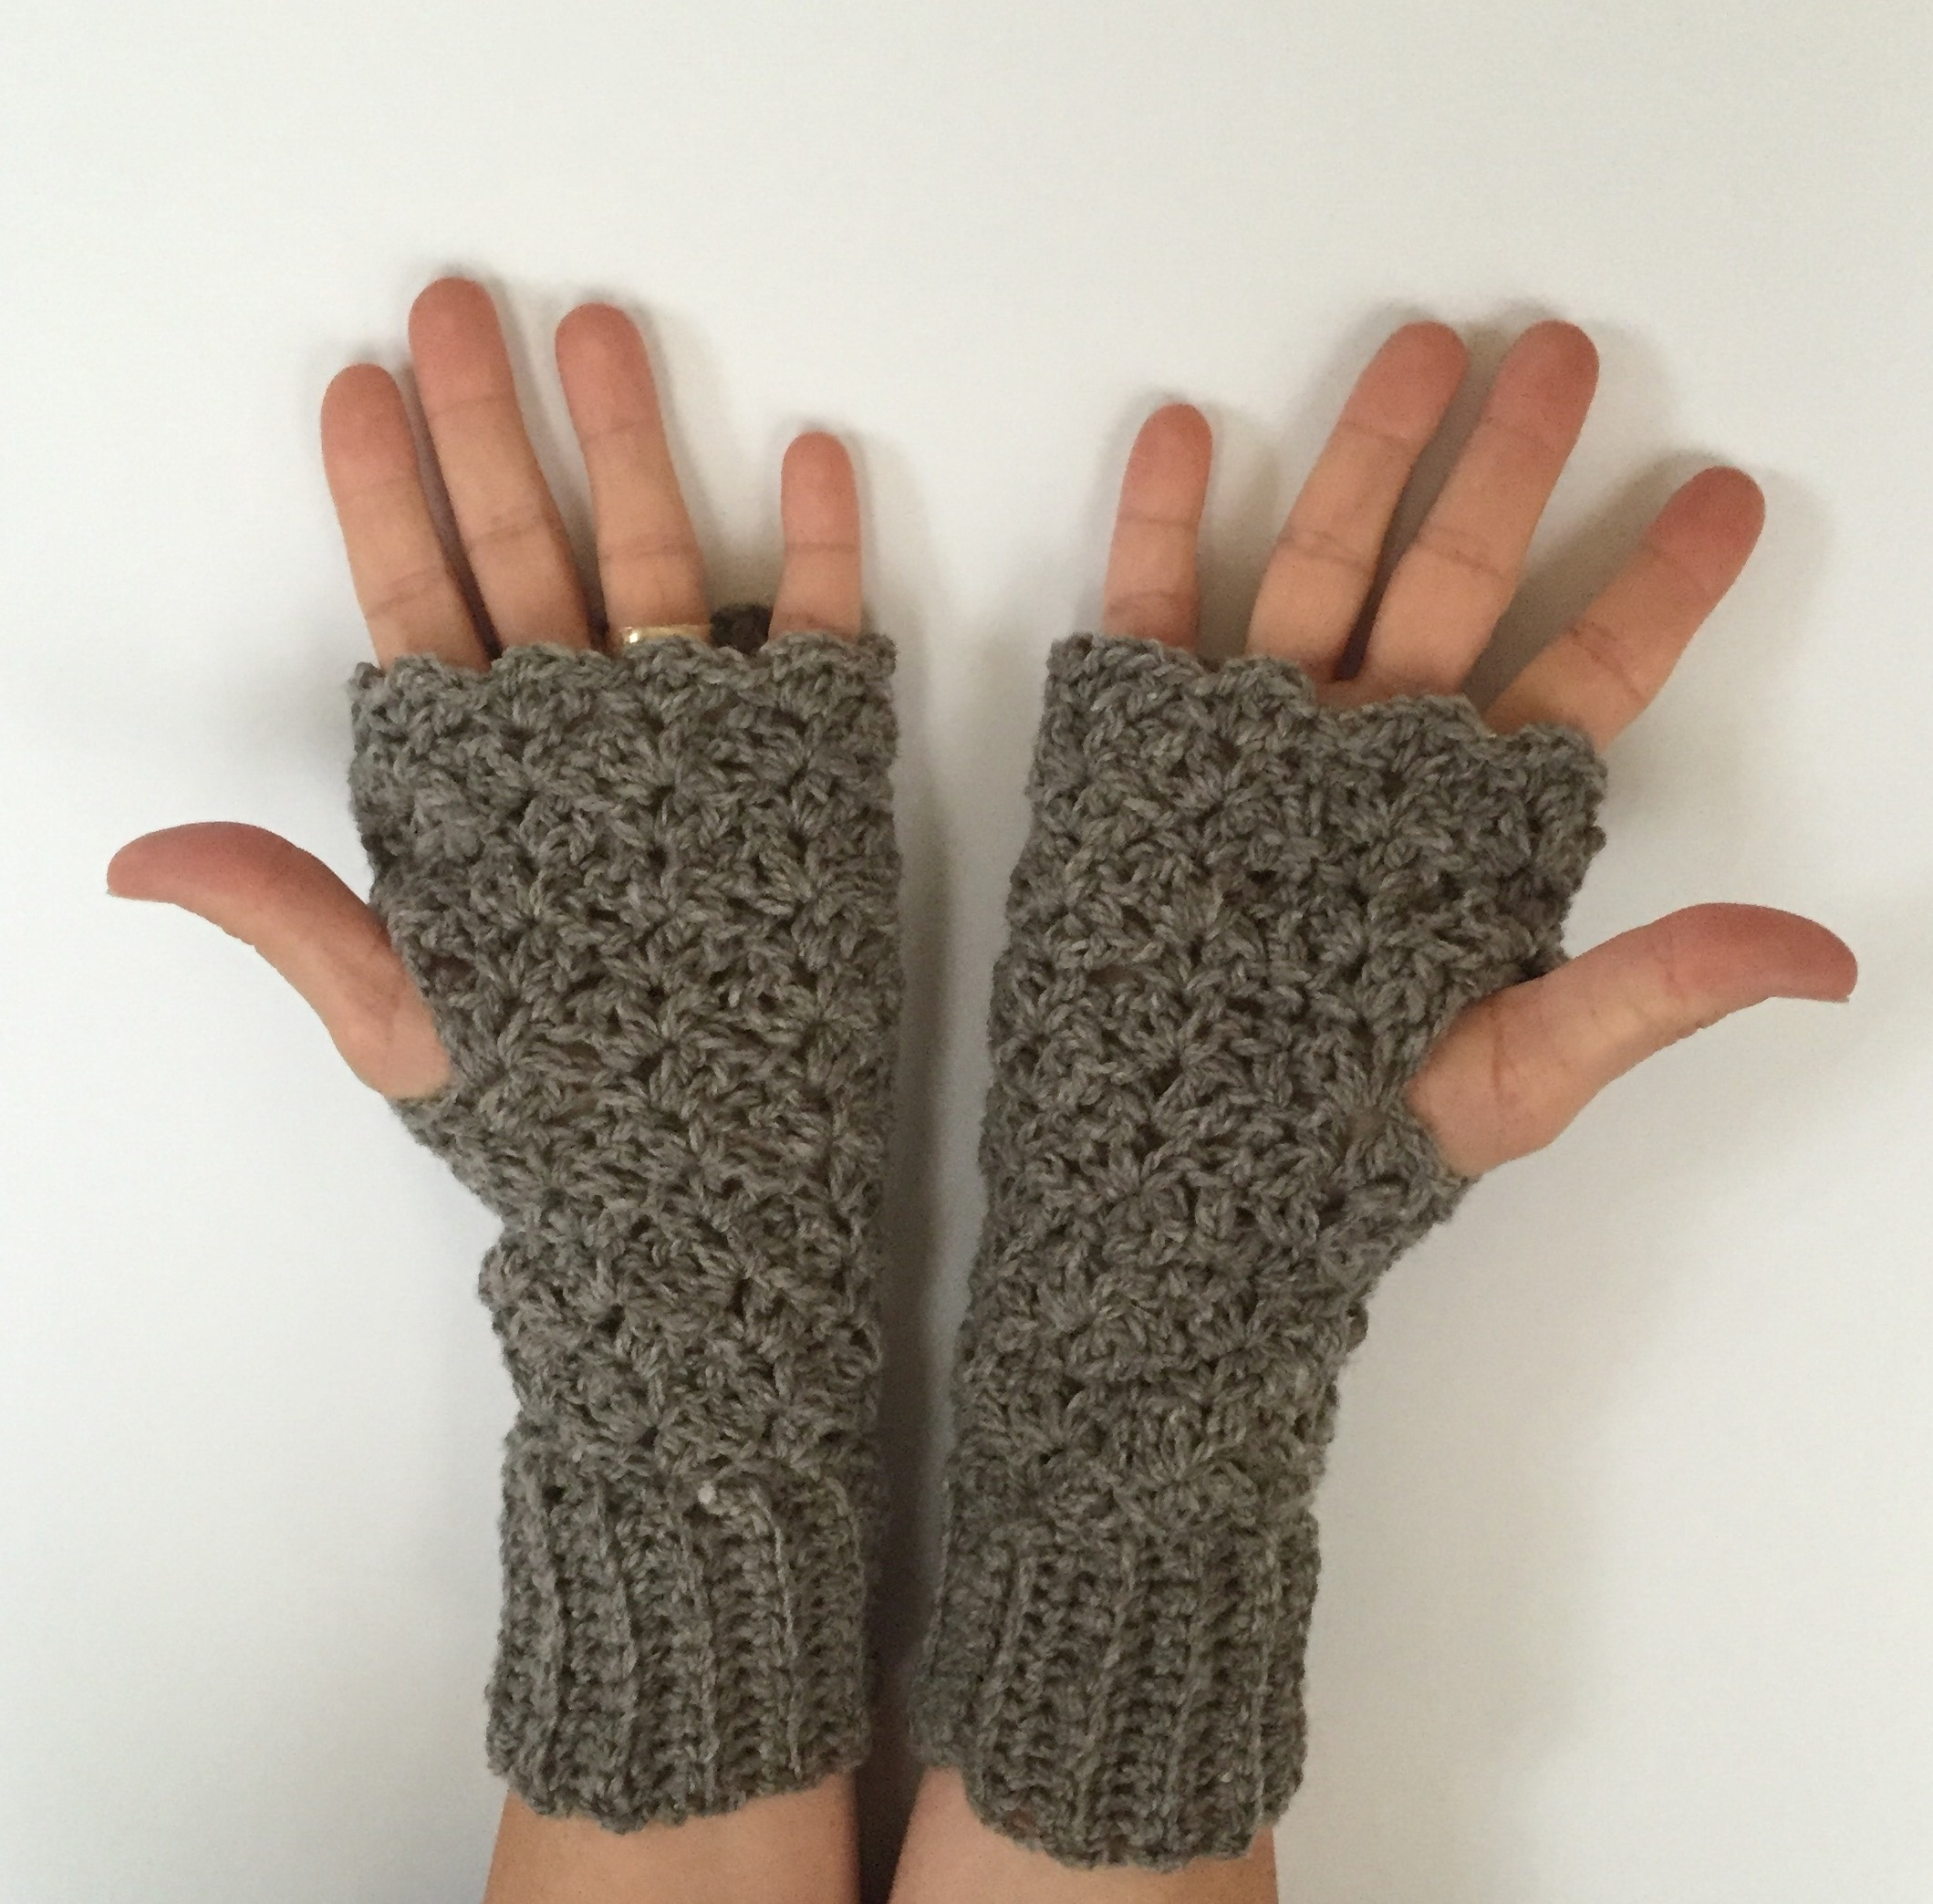 Crocheting Gloves Fingerless : Crochet Pattern - Lacy Fingerless Gloves - Little Monkeys Designs